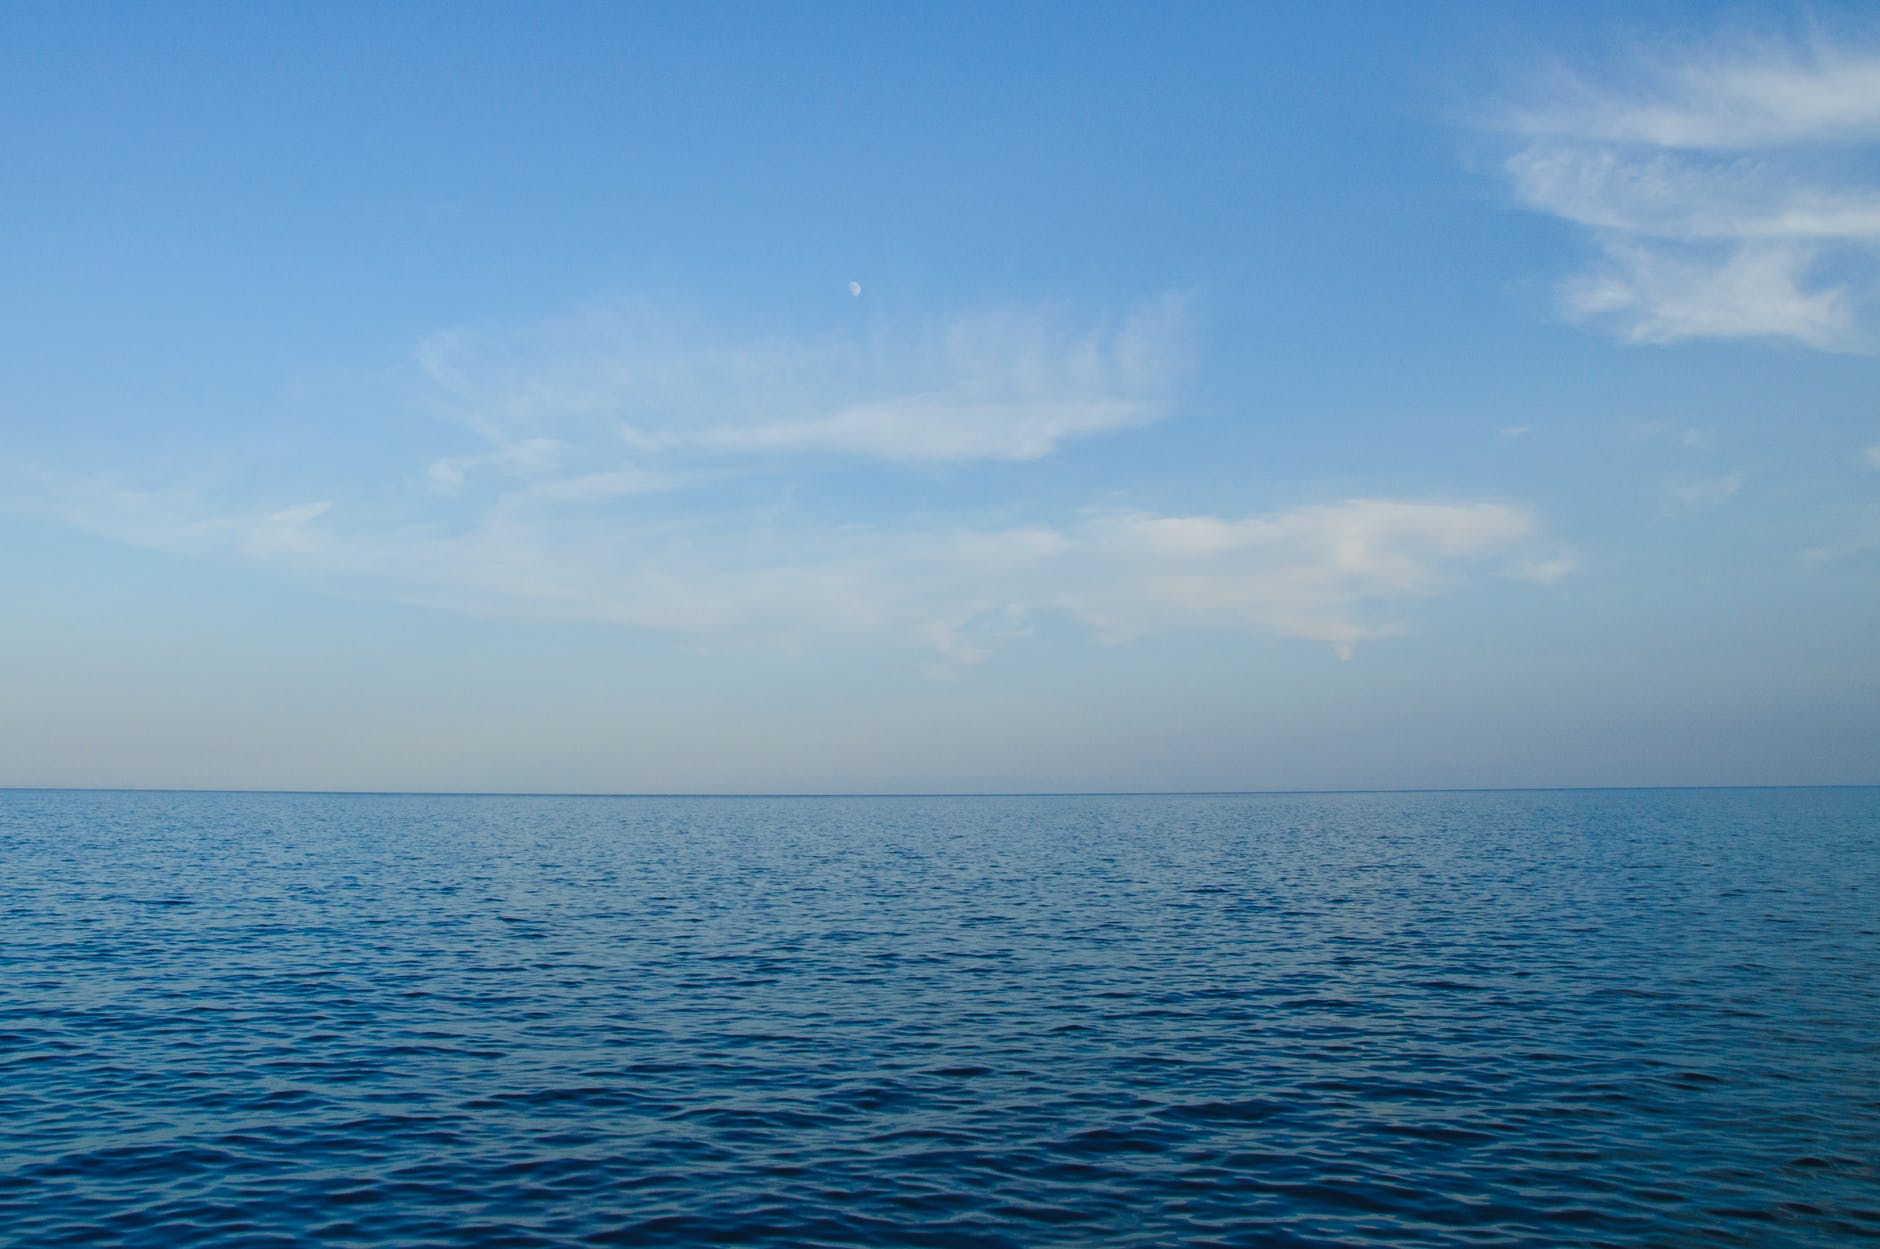 blue body of water under white clouds